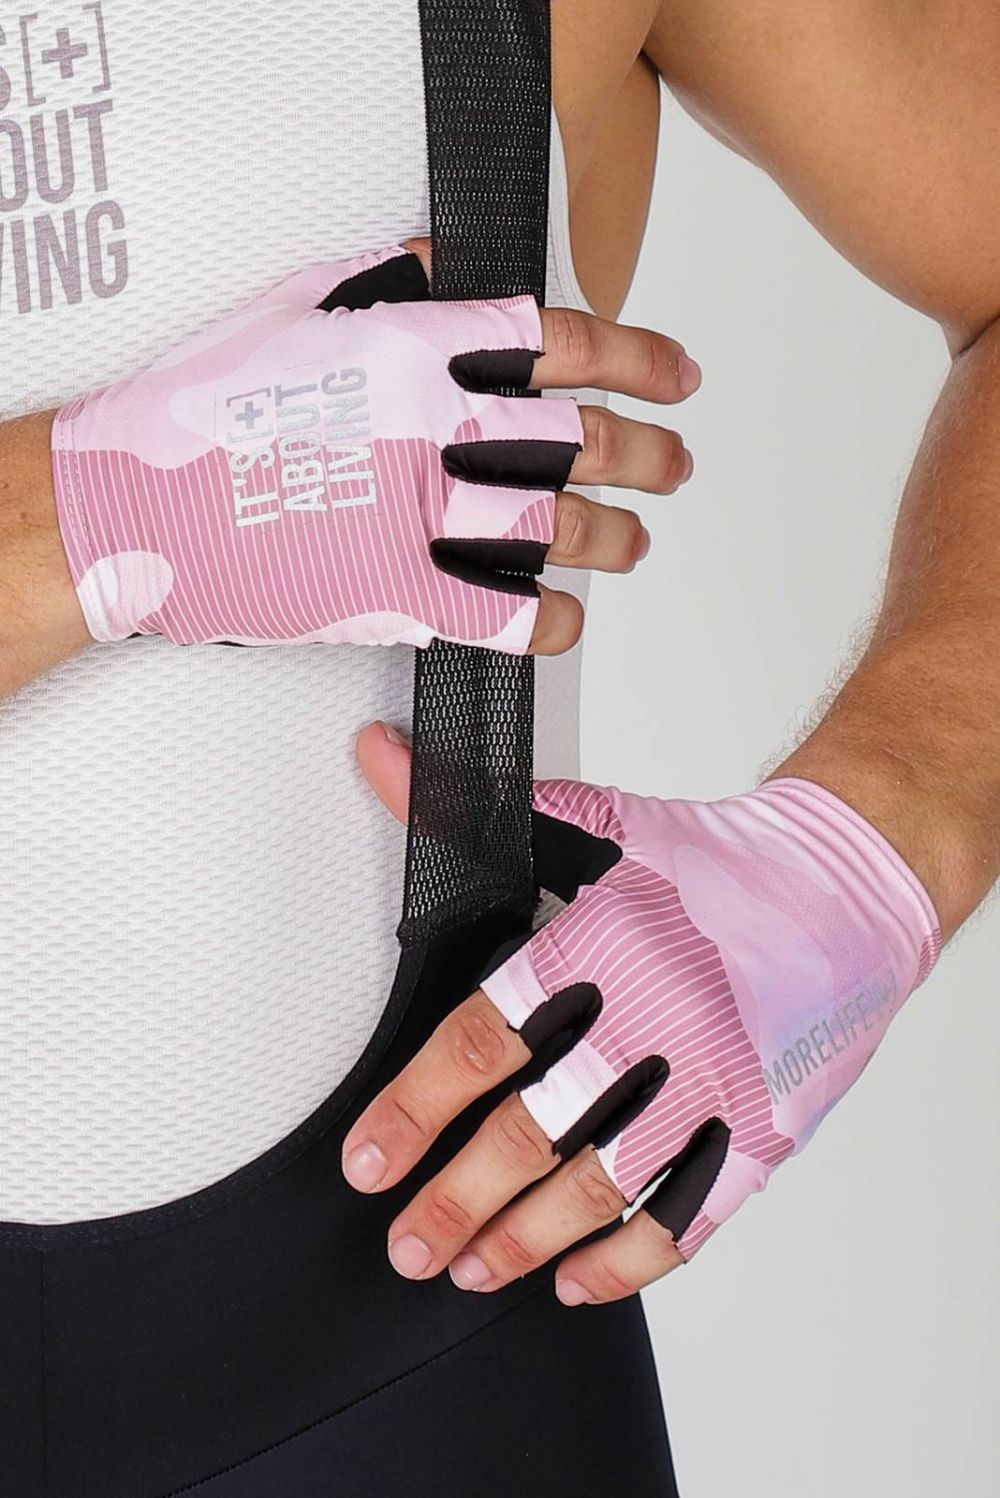 ARMY PINK GLOVES